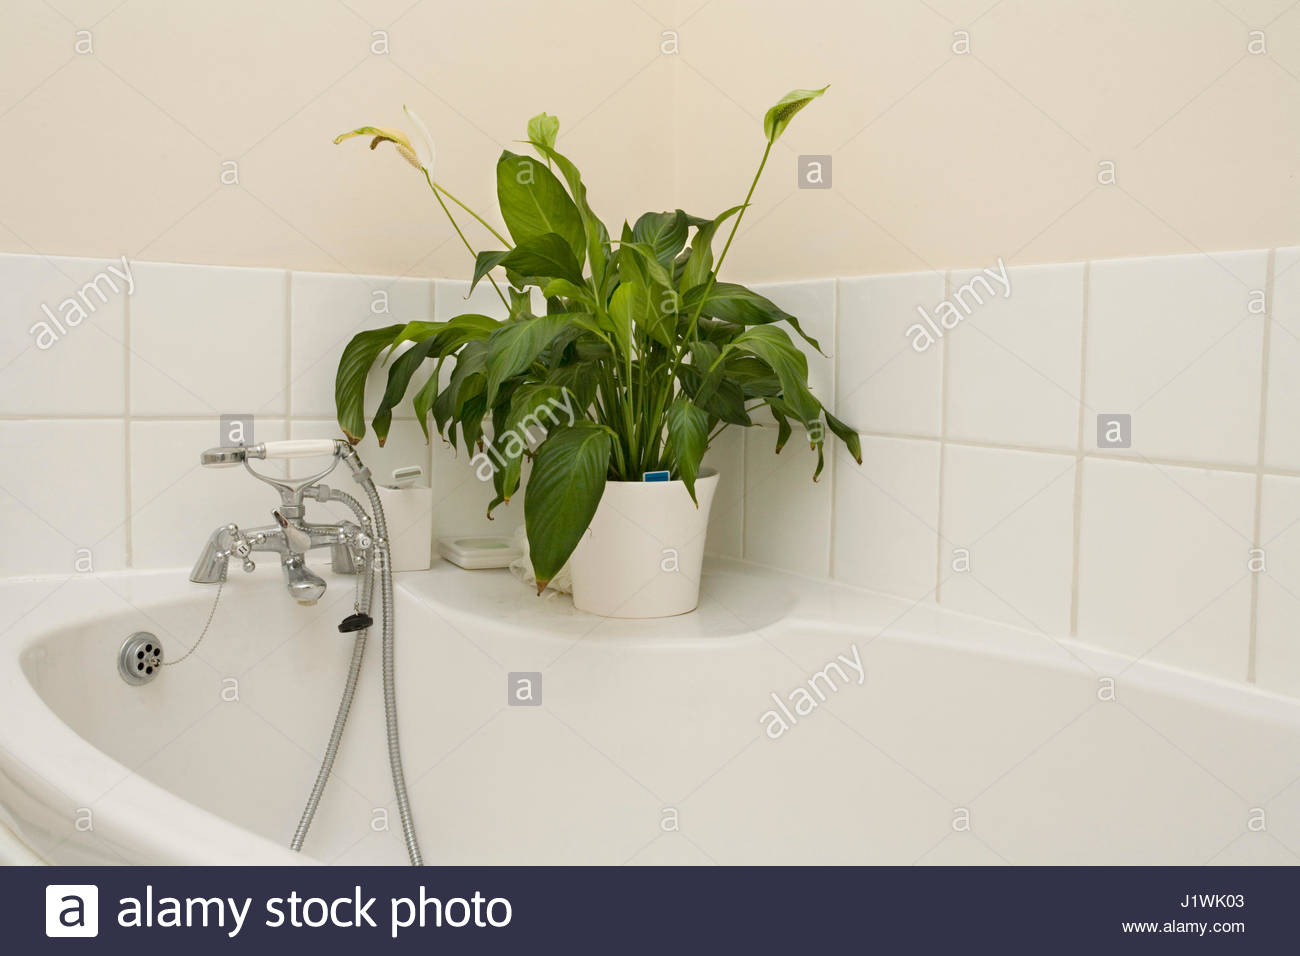 Peace Lily In Bathroom. A Shade Tolerant Spathiphyllum Peace Lily Growing In A Bathroom